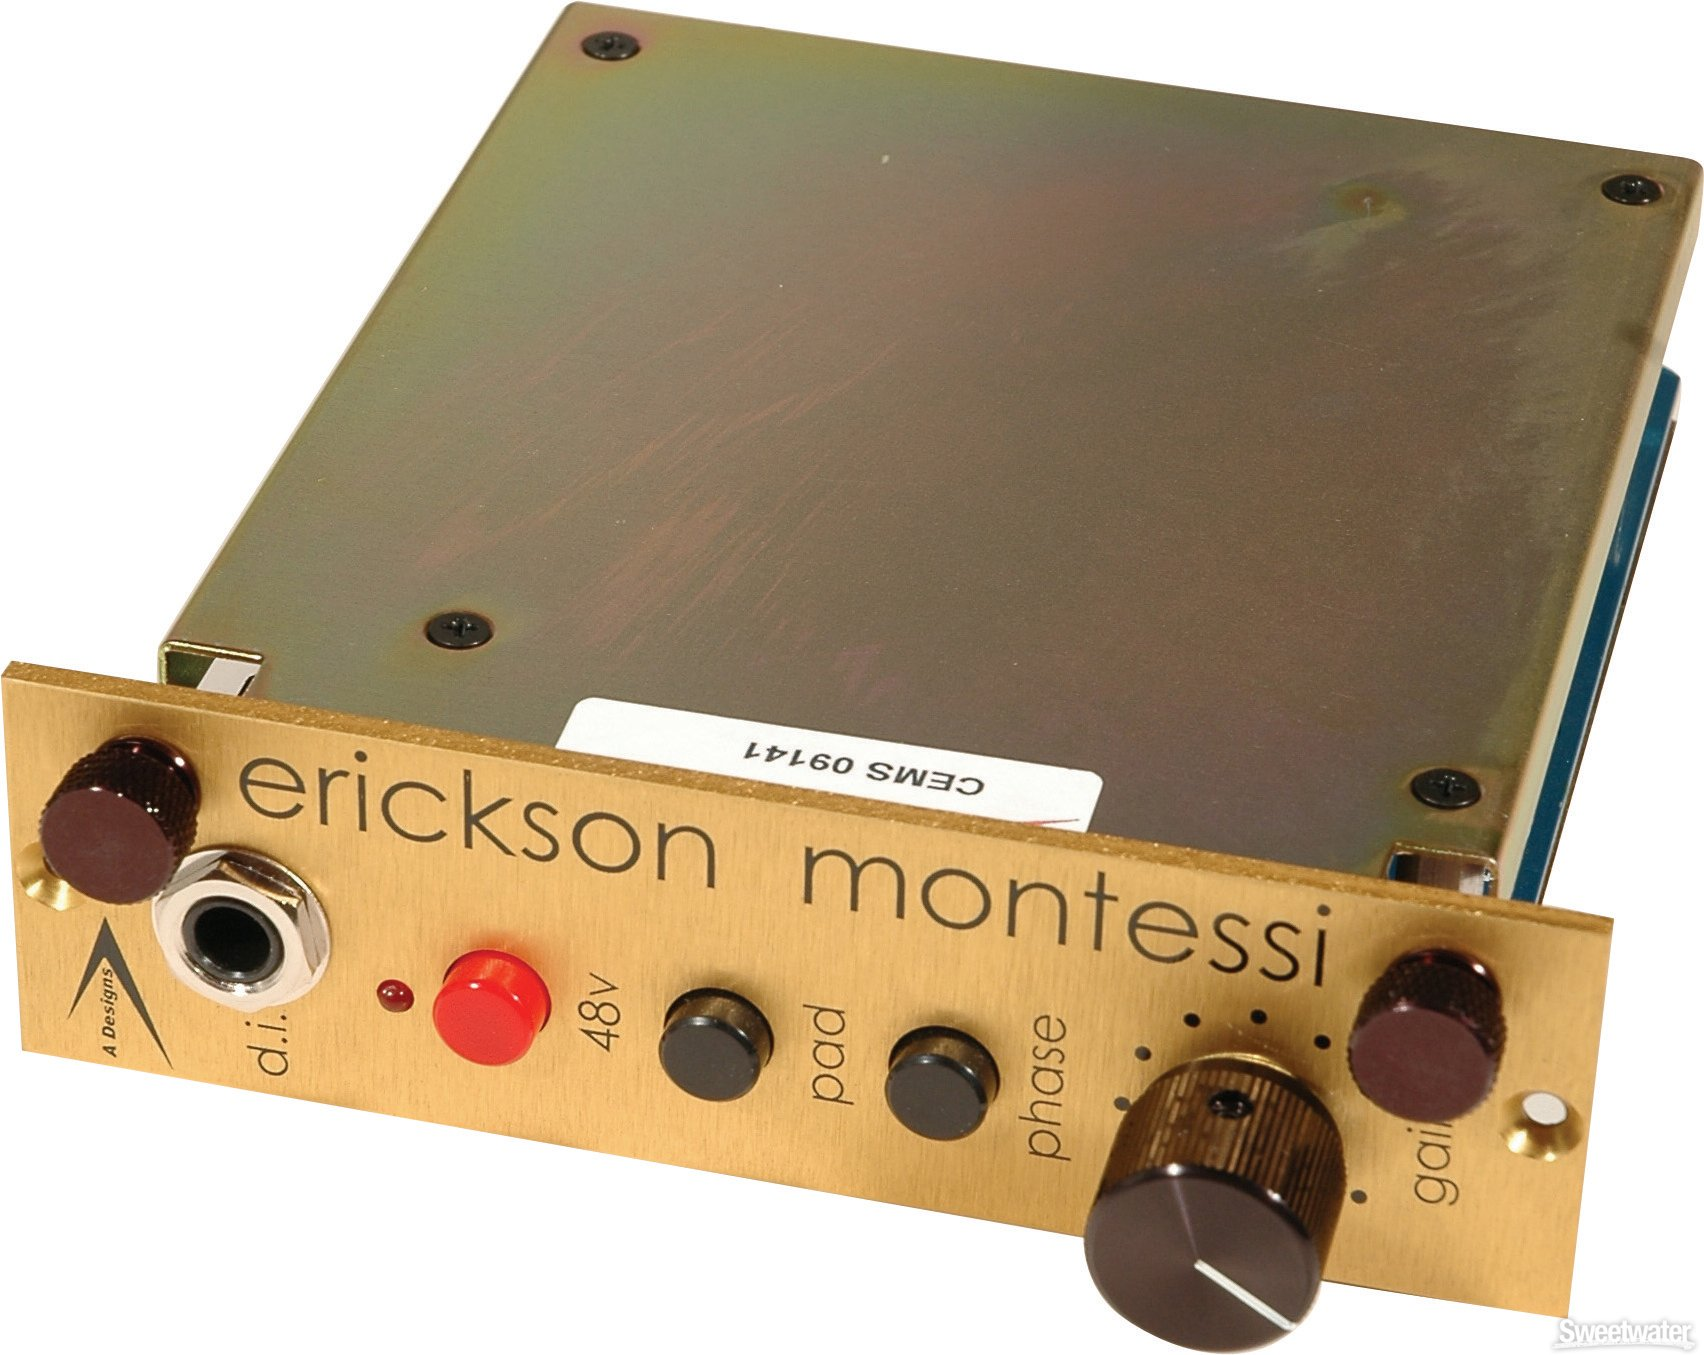 A Designs Em Gold Microphone Preamp Sweetwater Preamplifier With Tlc251 Image 1